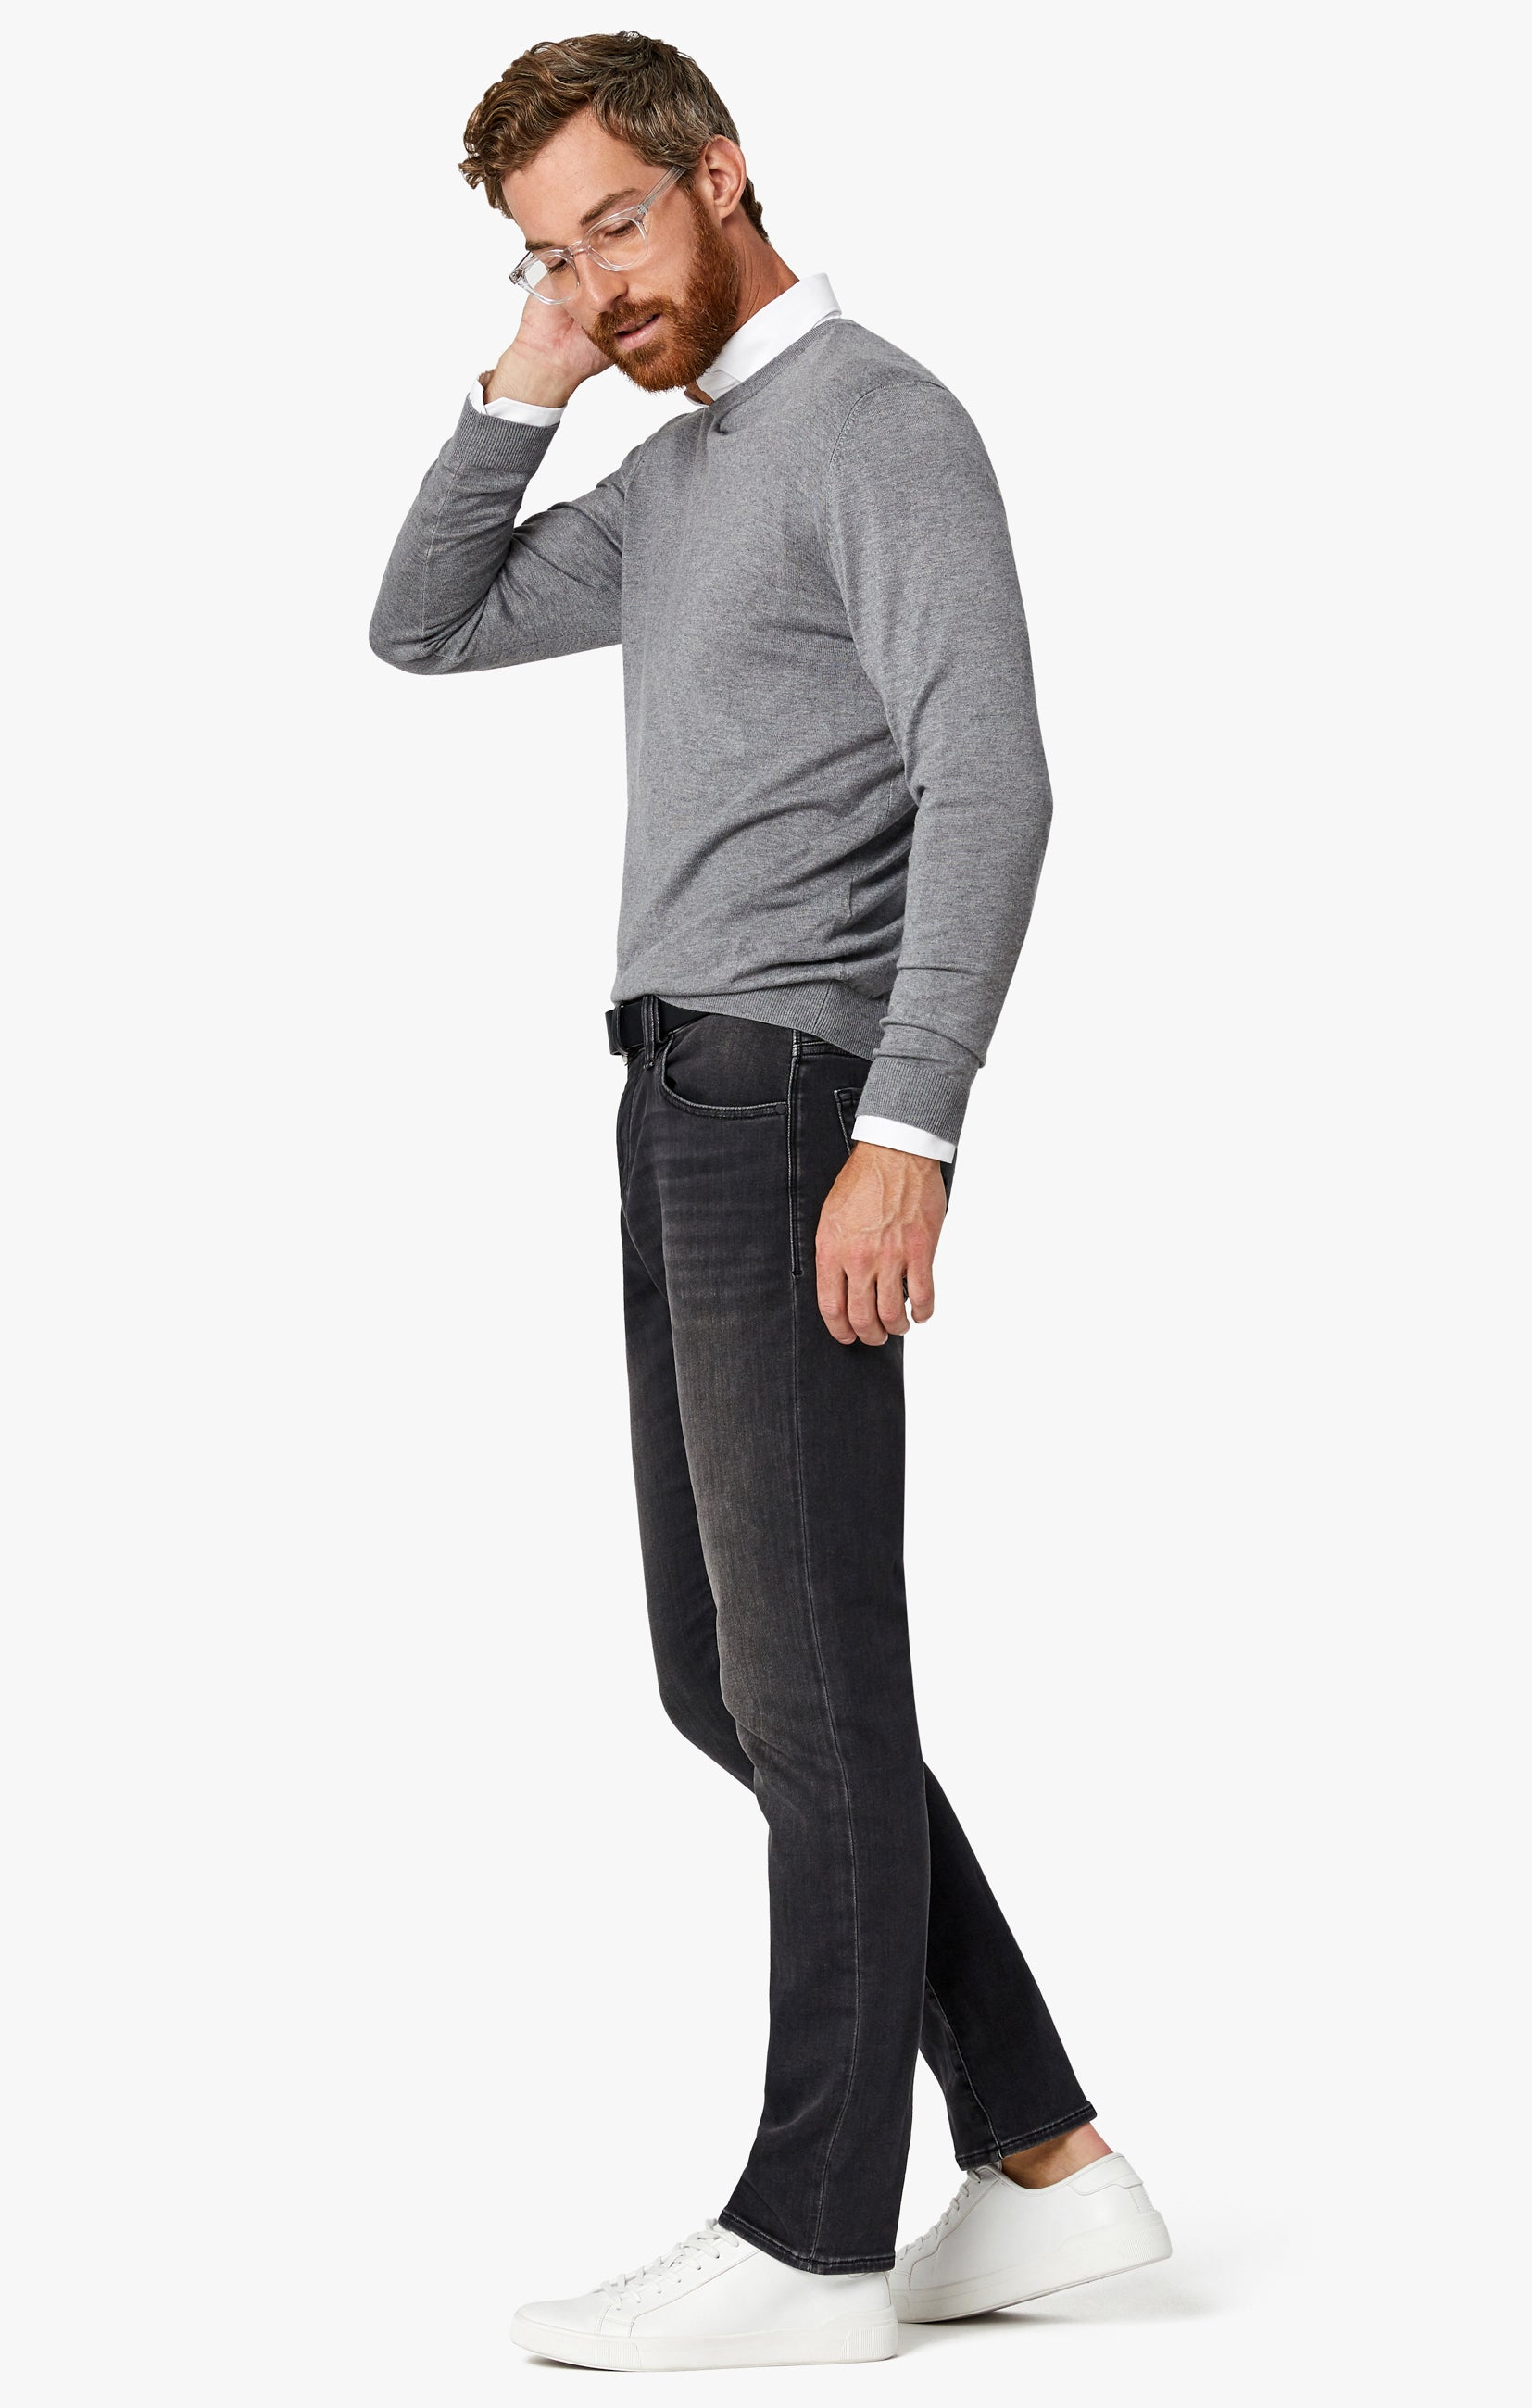 Courage Straight Leg Jeans in Mid Smoke Smart Casual Image 2